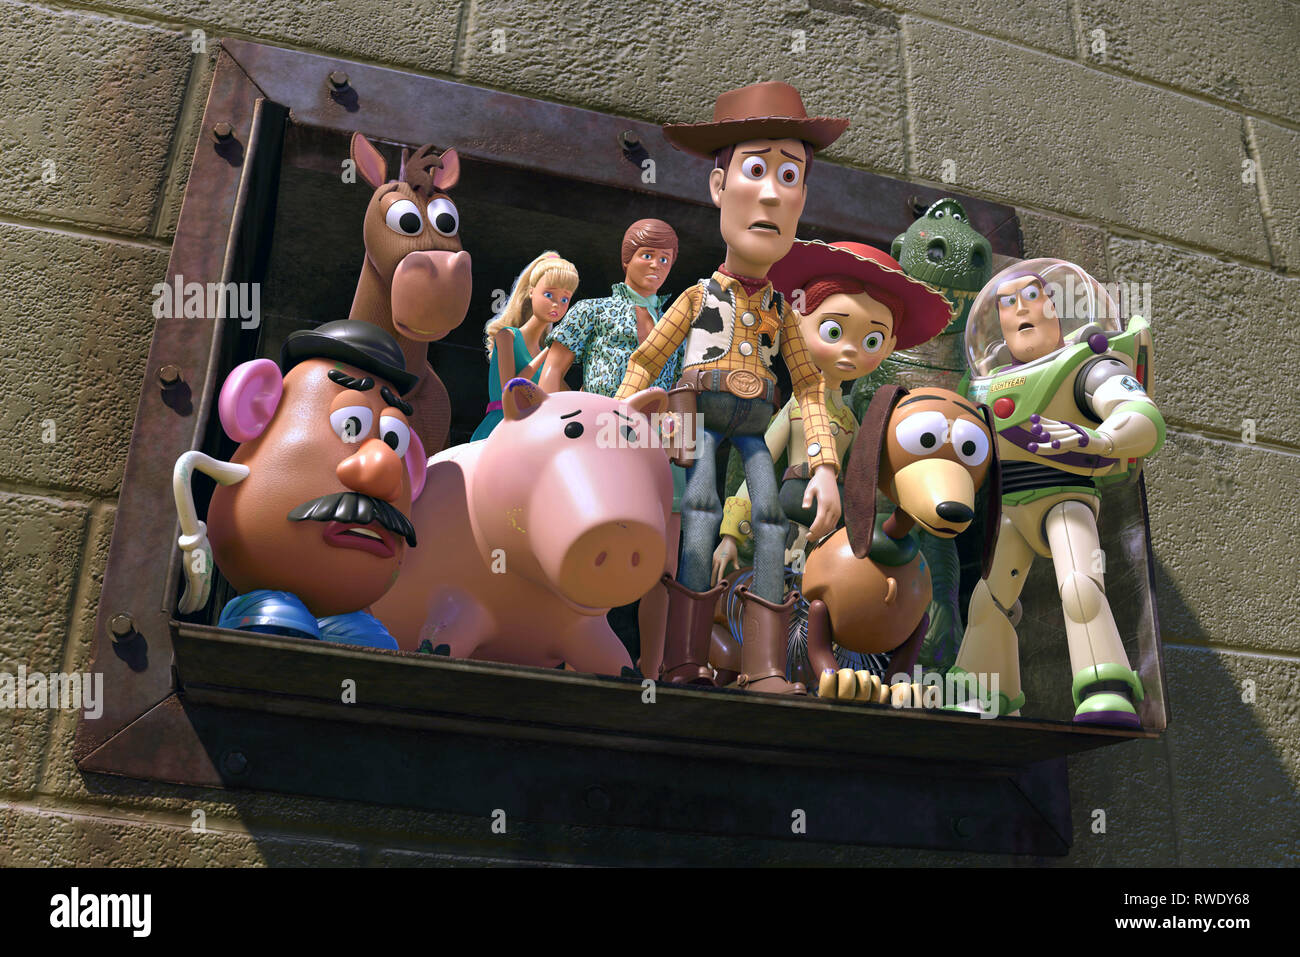 MR. POTATO HEAD, BULLSEYE, HAMM, BARBIE, KEN, WOODY, JESSIE, SLINKY, REX,BUZZ LIGHTYEAR, TOY STORY 3, 2010 - Stock Image